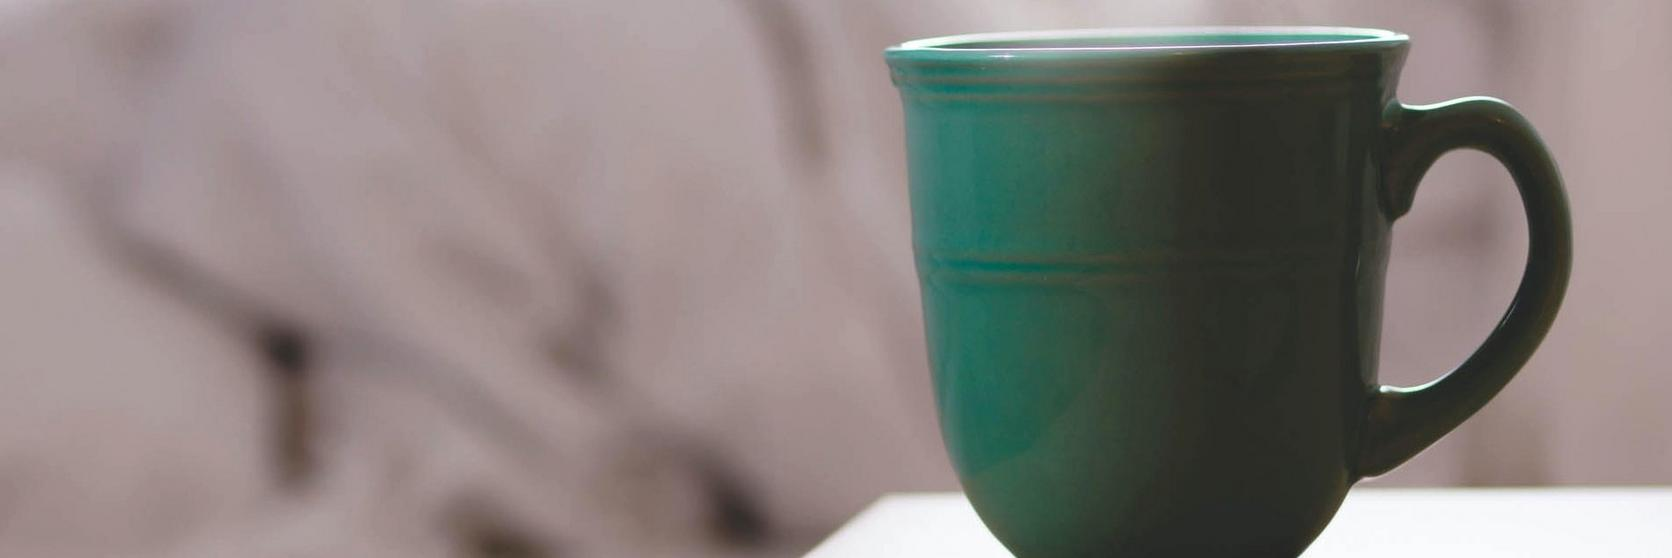 bedside-coffee-cup